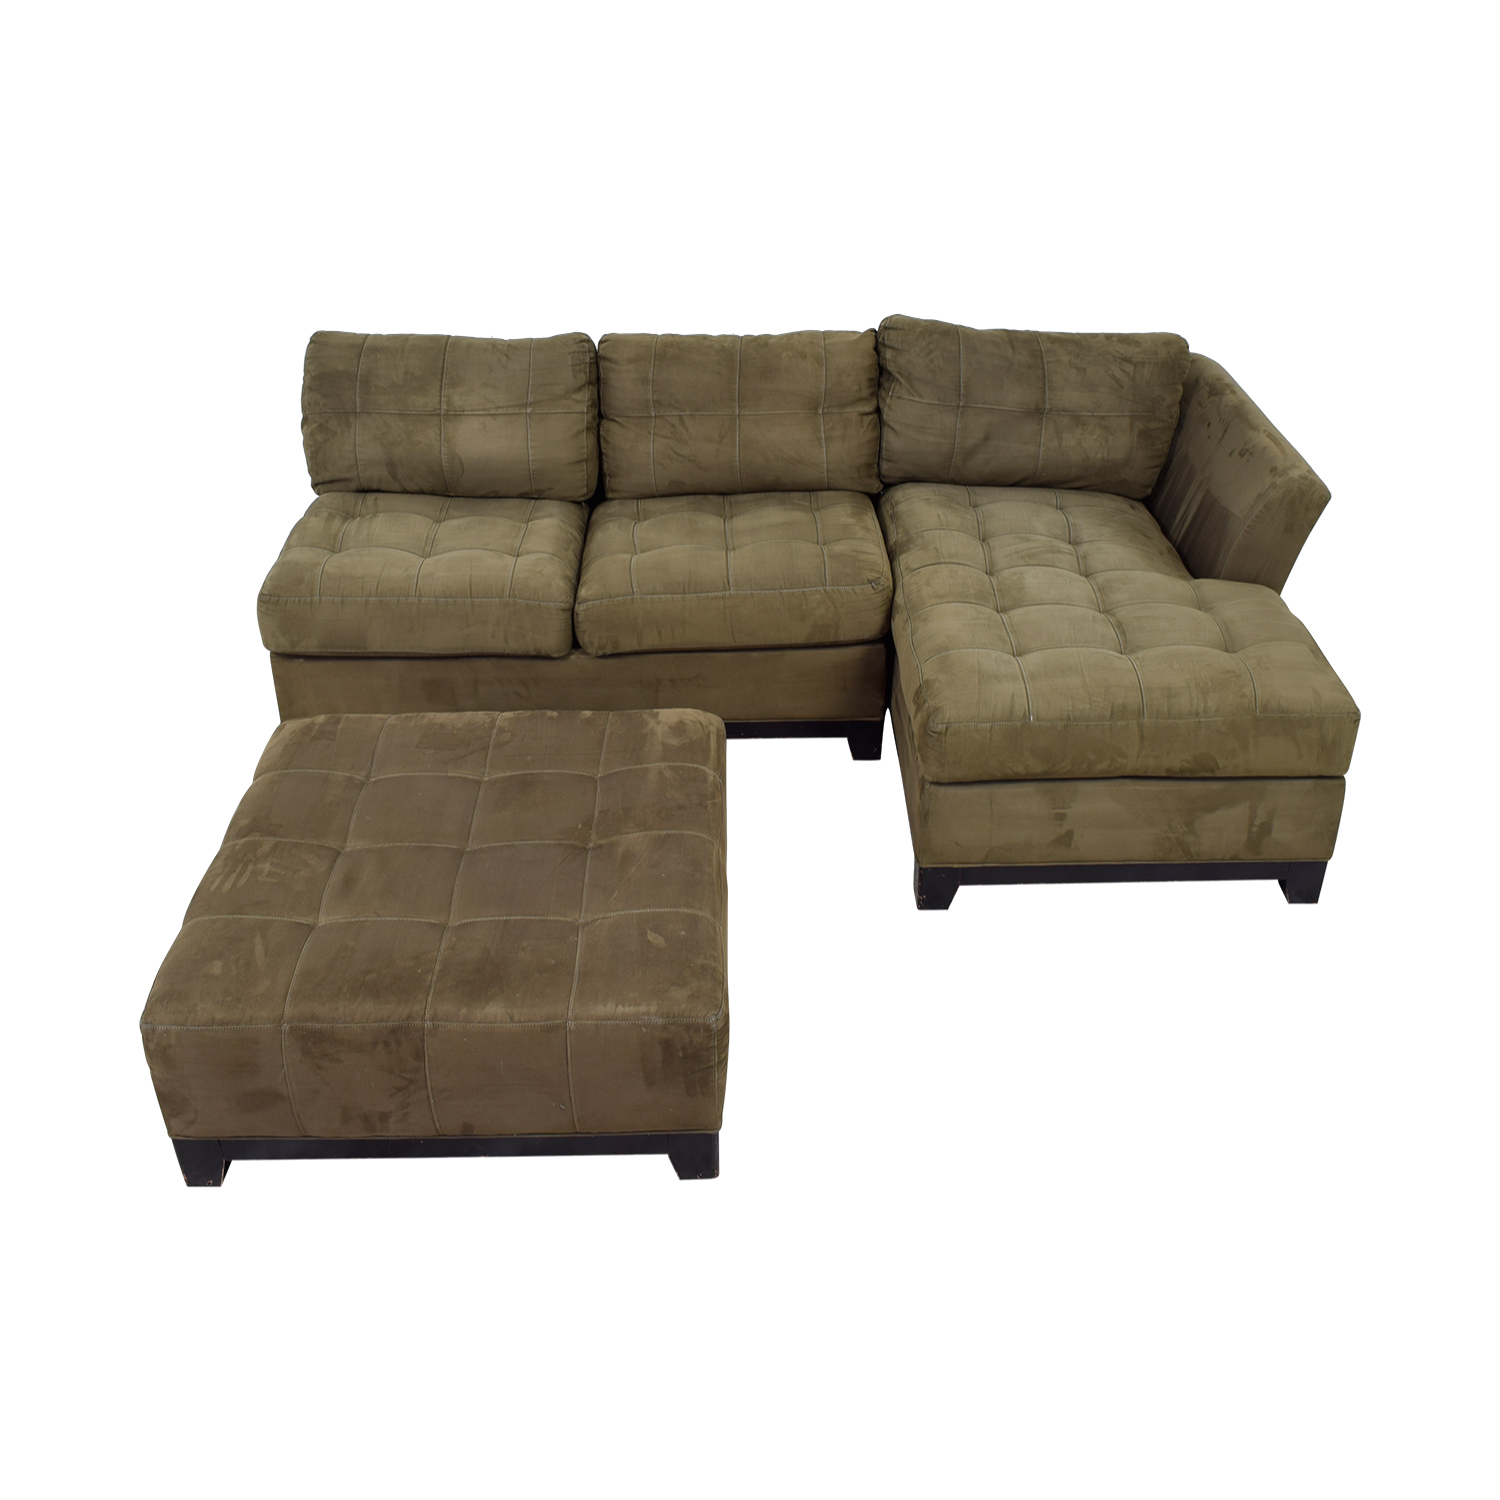 Cindy Crawford Metropolis Green Chaise Sectional with Ottoman / Sofas